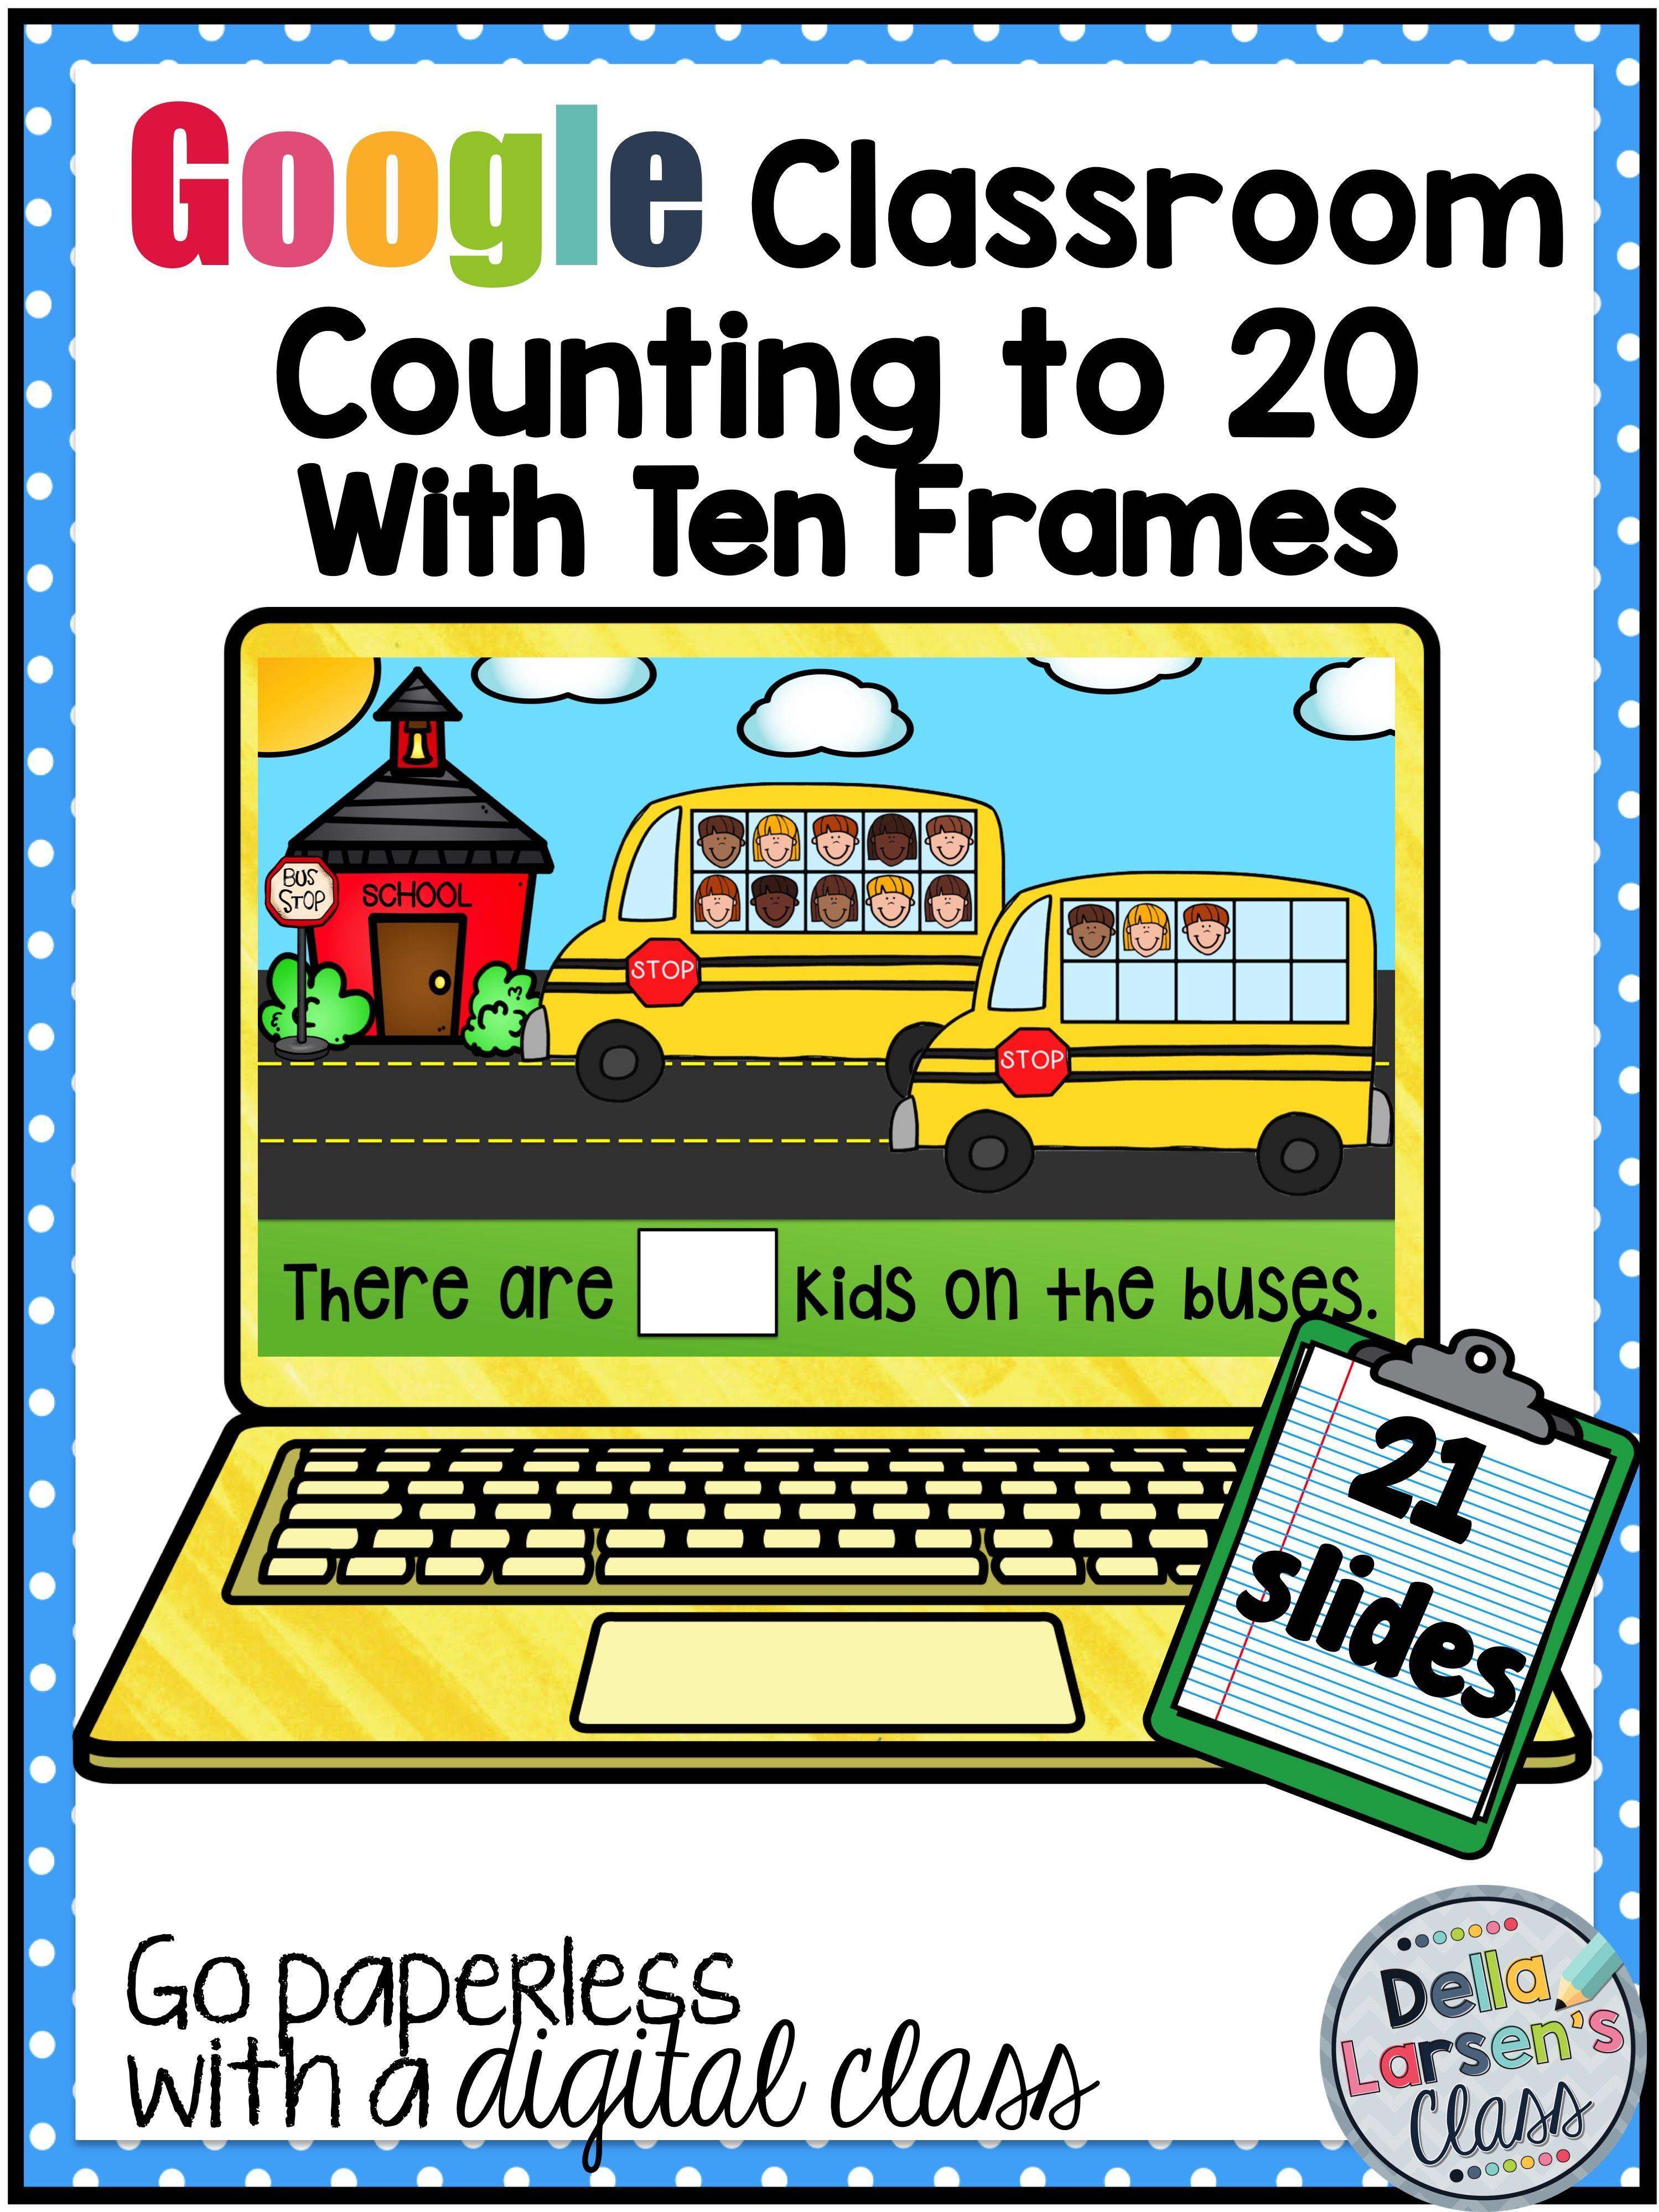 Classroom Counting To 20 With Ten Frames